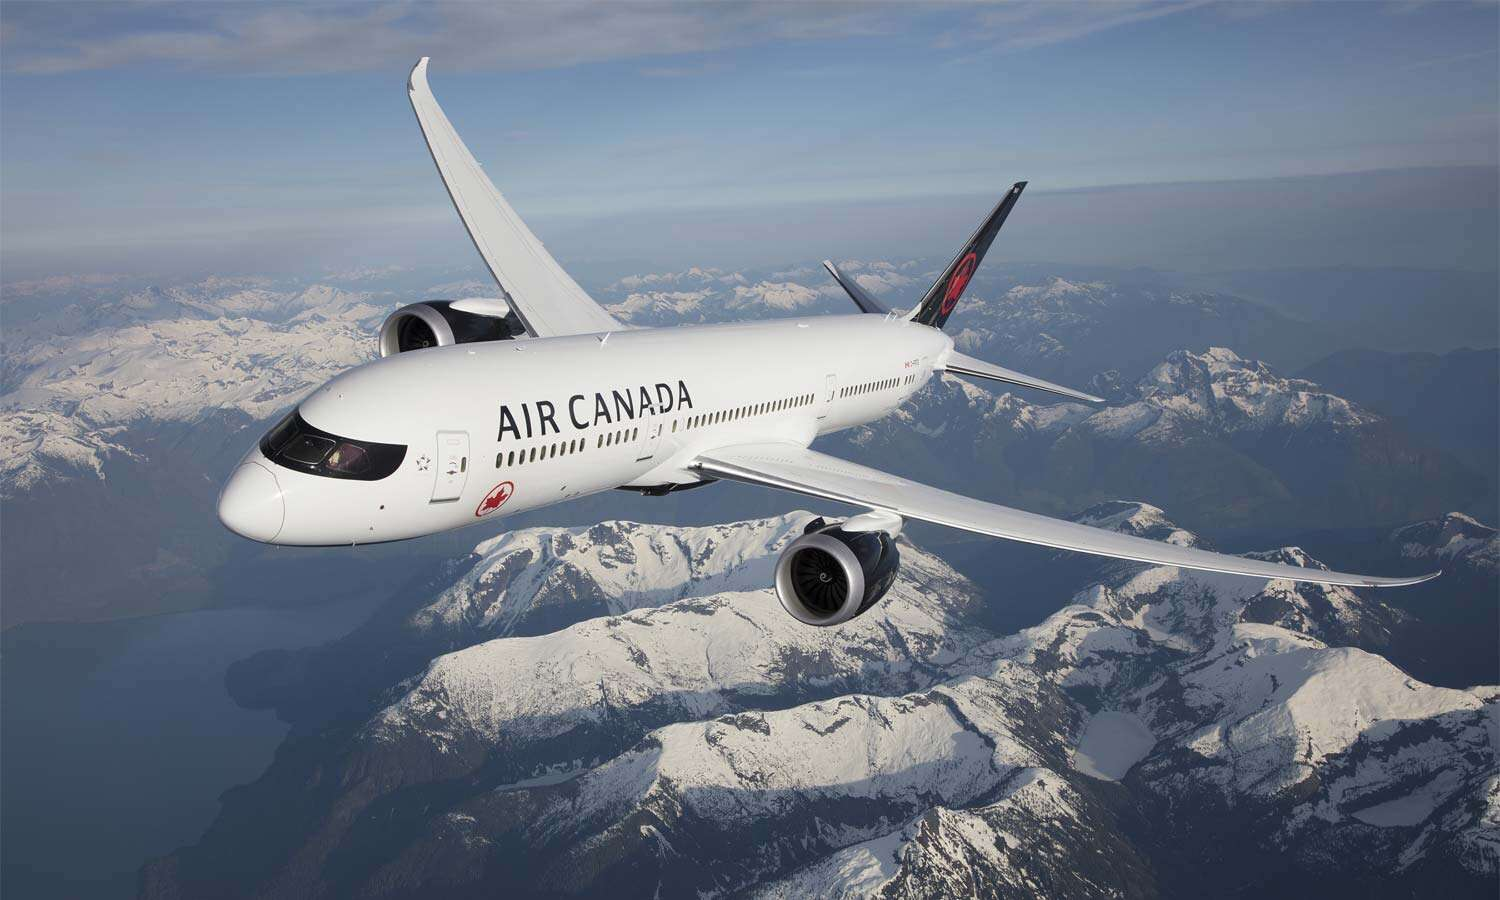 Air Canada to Offer Refunds for All Fares for Flights Affected by COVID-19 since February 1, 2020